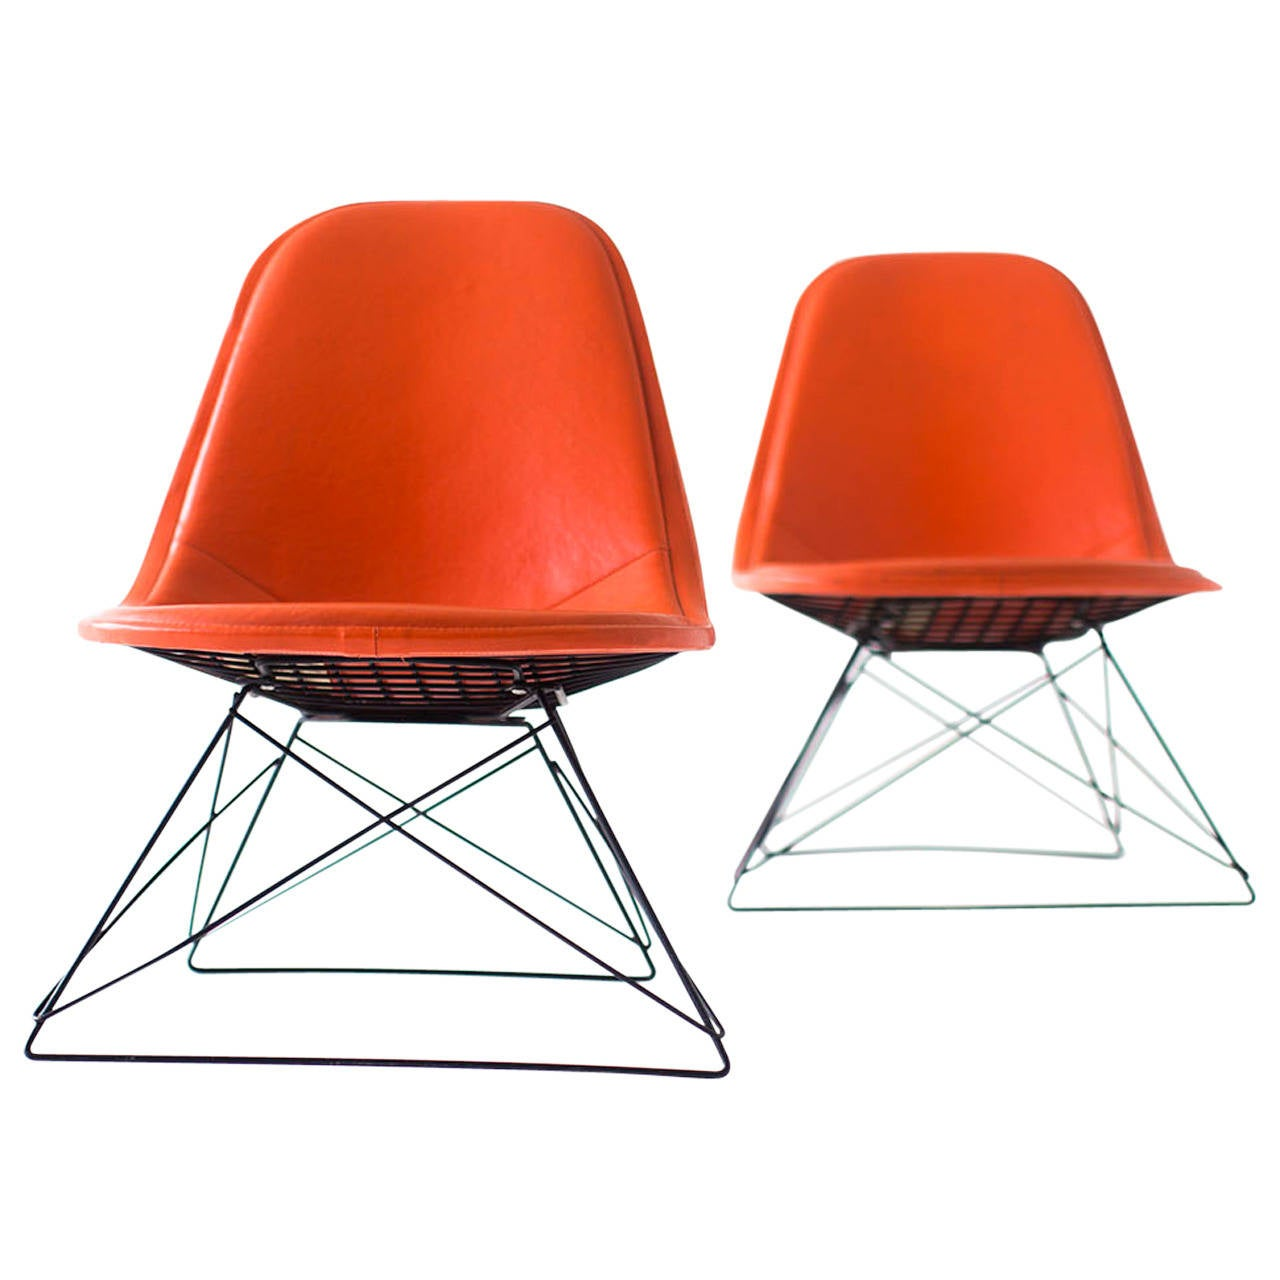 Ray and Charles Eames LKR-1 Lounge Chairs for Herman Miller